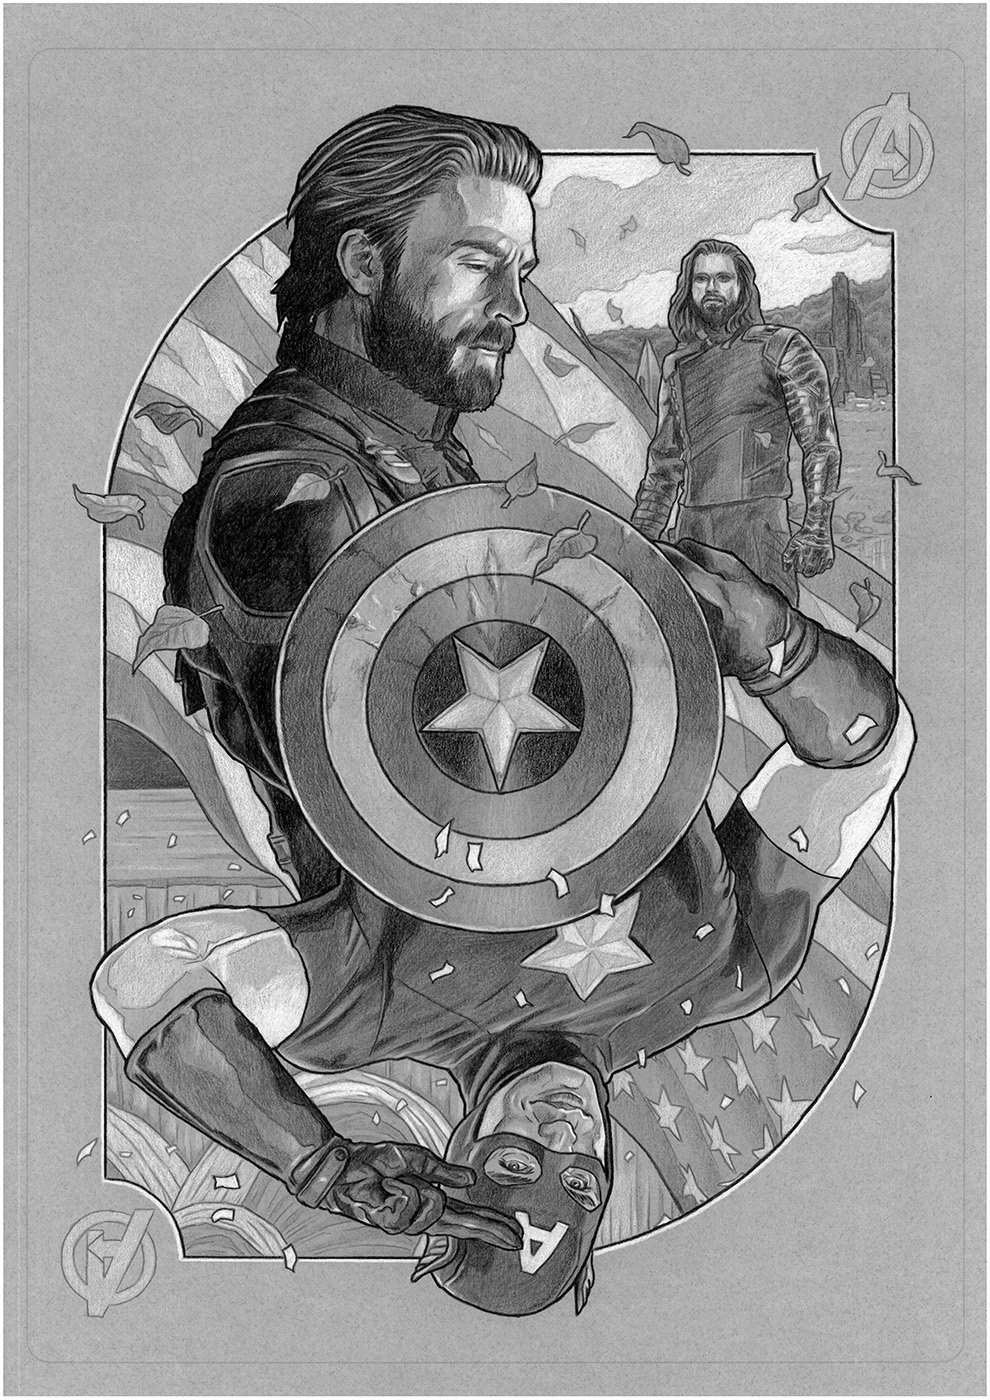 The Geeky Nerfherder: #CoolArt: 'Avengers Picture Card